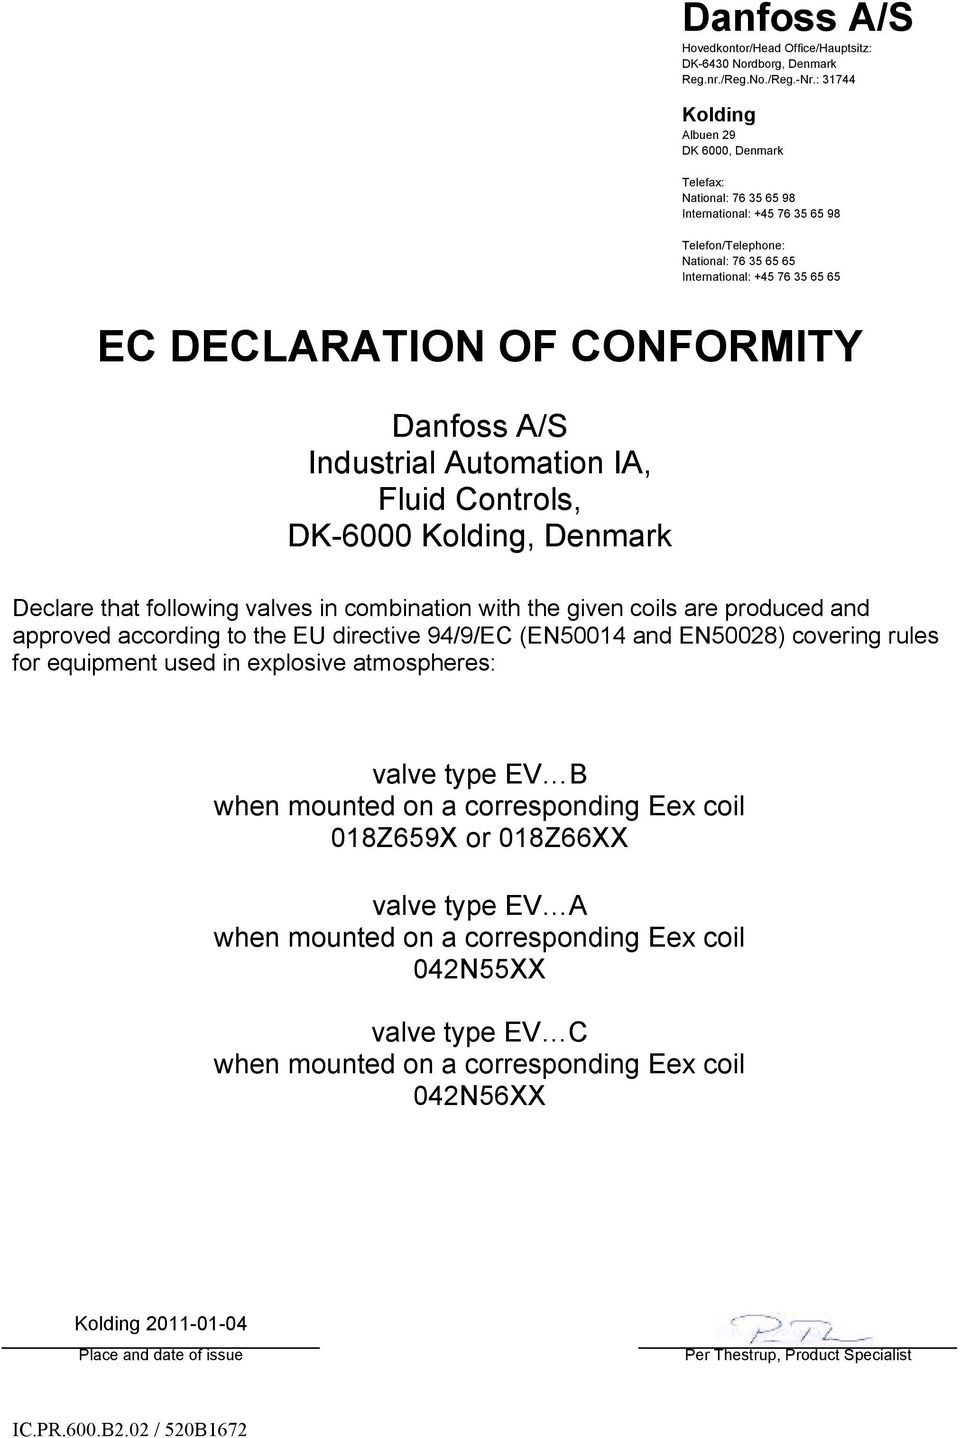 Automation IA, Fluid Controls, DK-6000, Denmark Declare that following valves in combination with the given coils are produced and approved according to the EU directive 94/9/EC (EN50014 and EN50028)